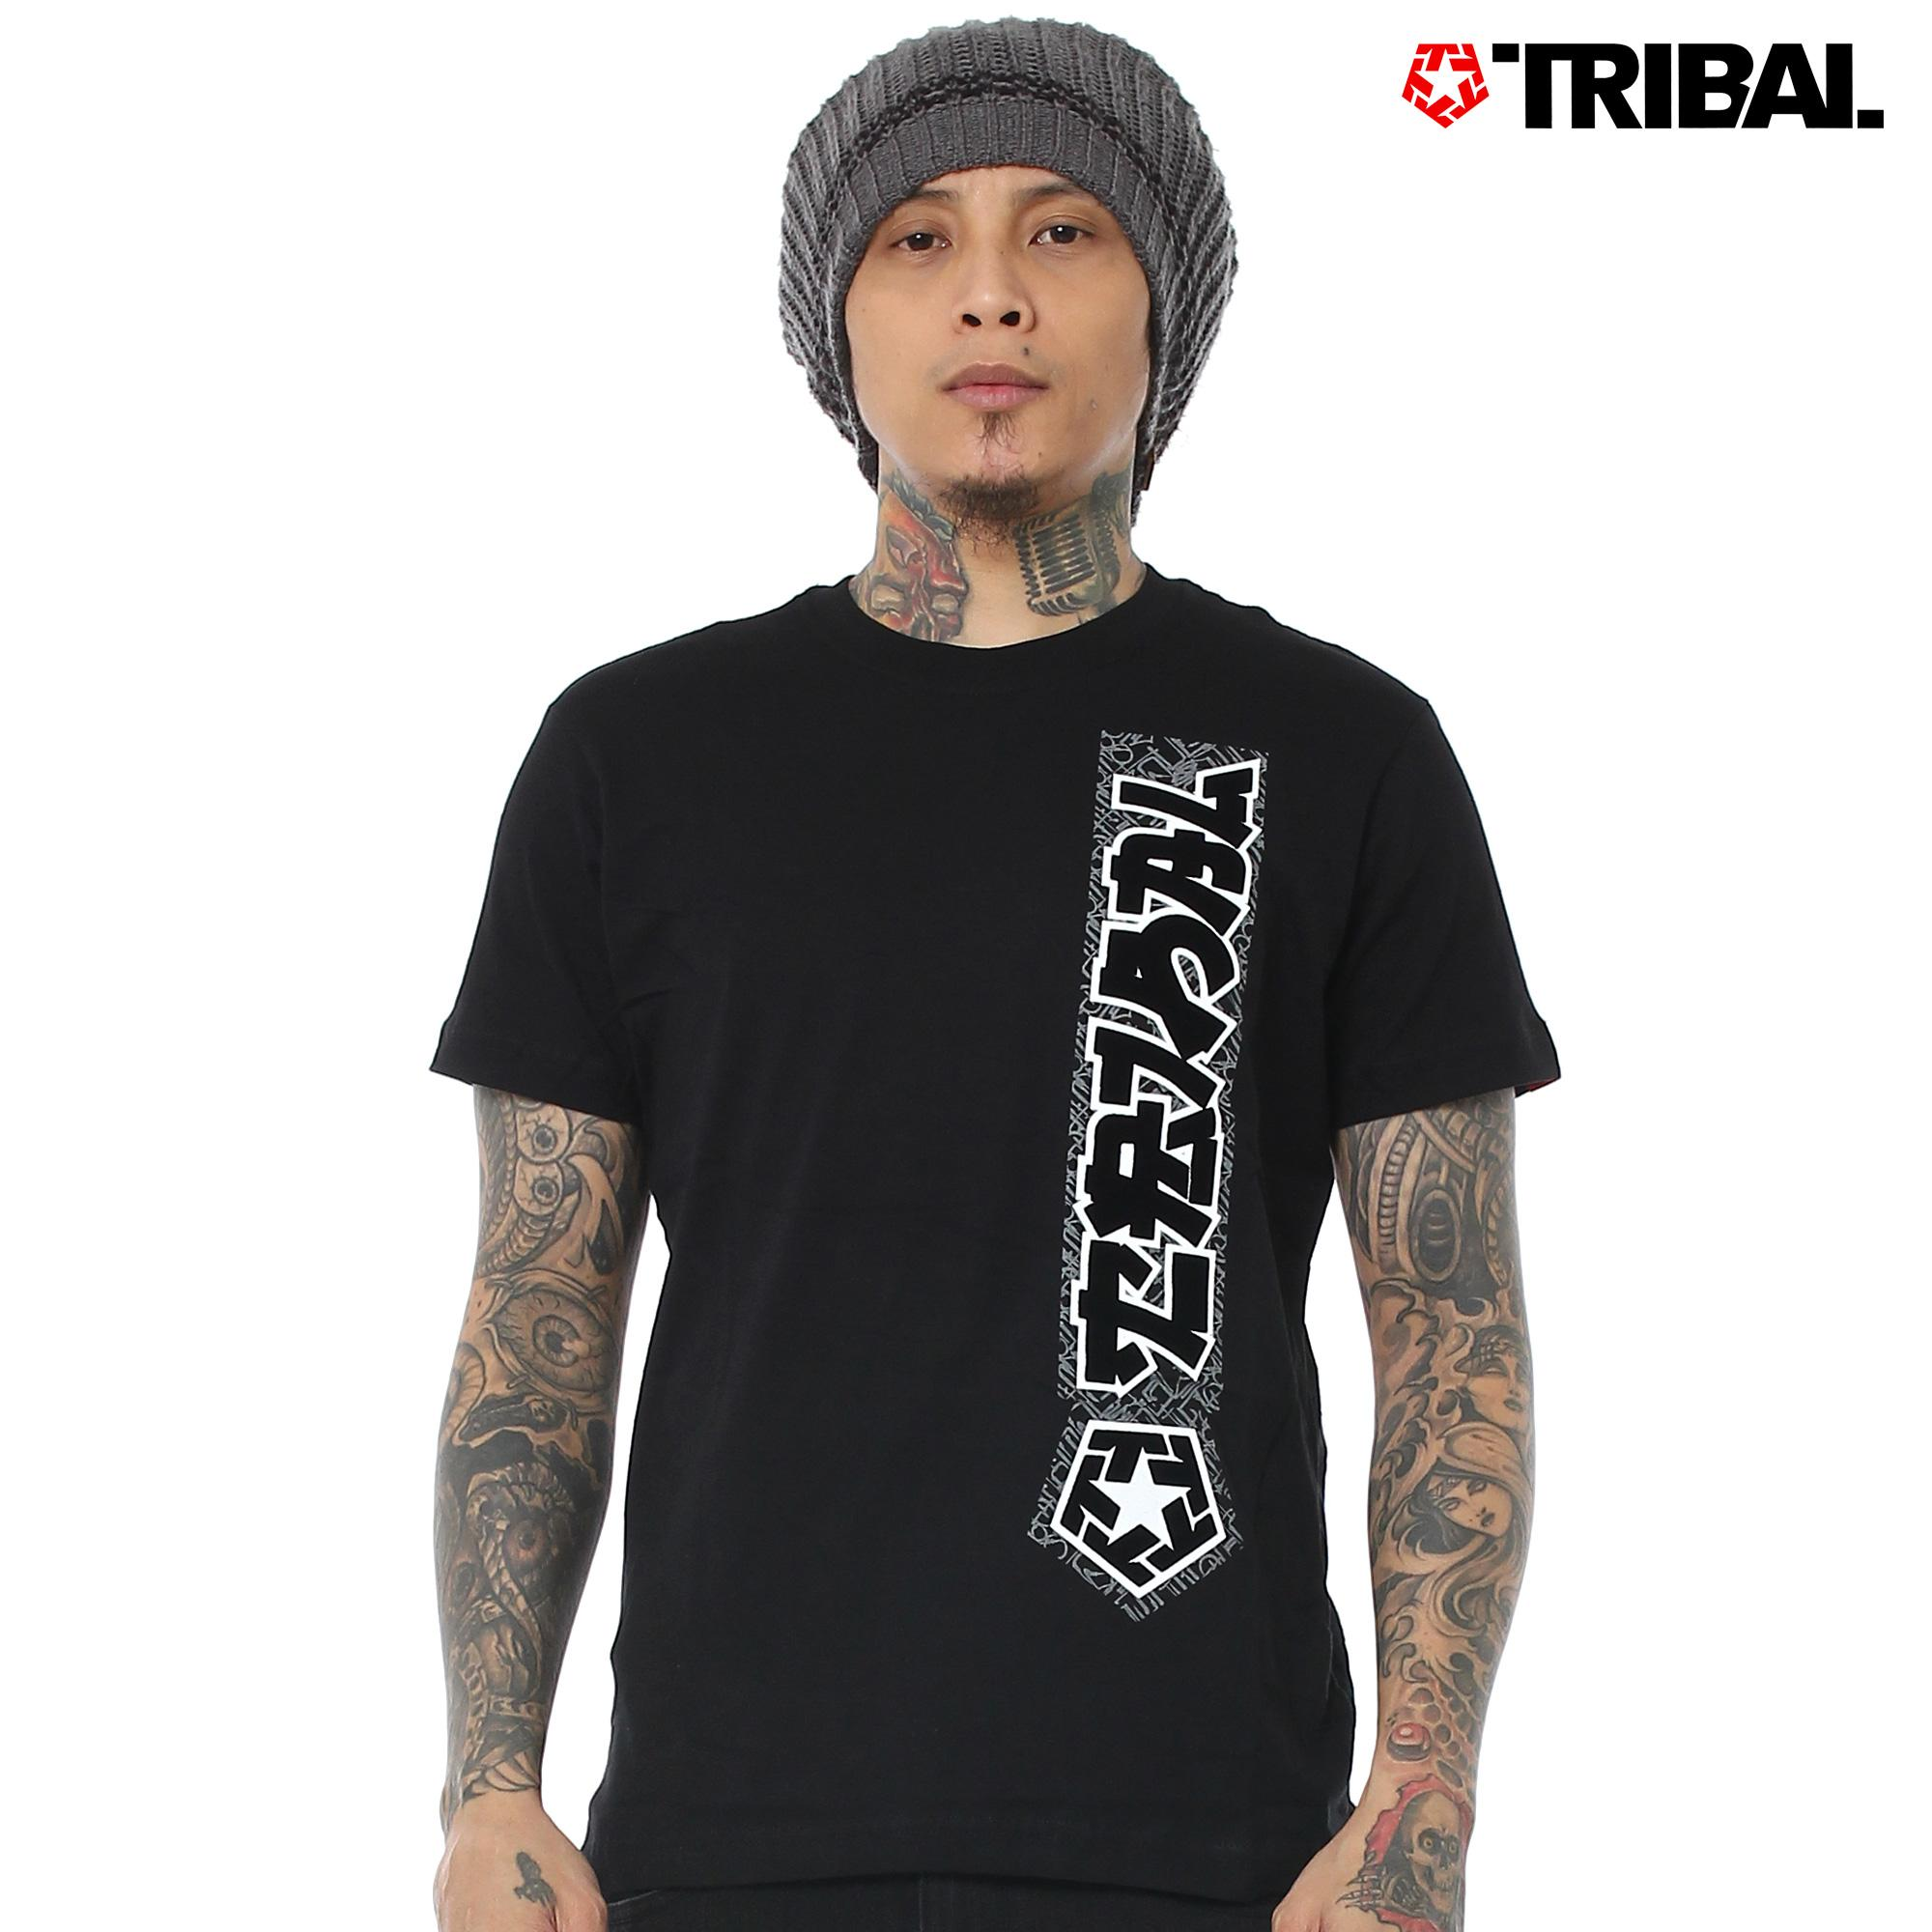 51a4c14c3ffe TRIBAL Philippines -TRIBAL T-Shirt Clothing for Men for sale ...